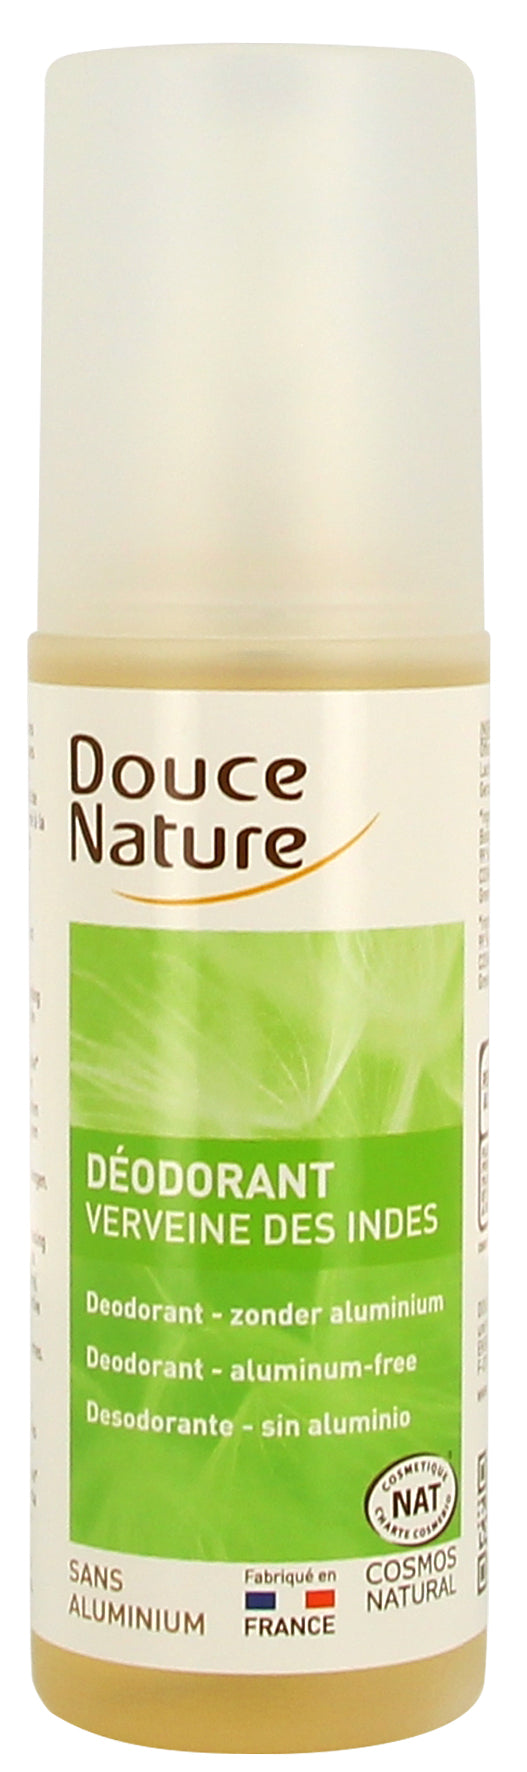 Douce Nature Natural Deodorant Lemongrass - Natural Ethos